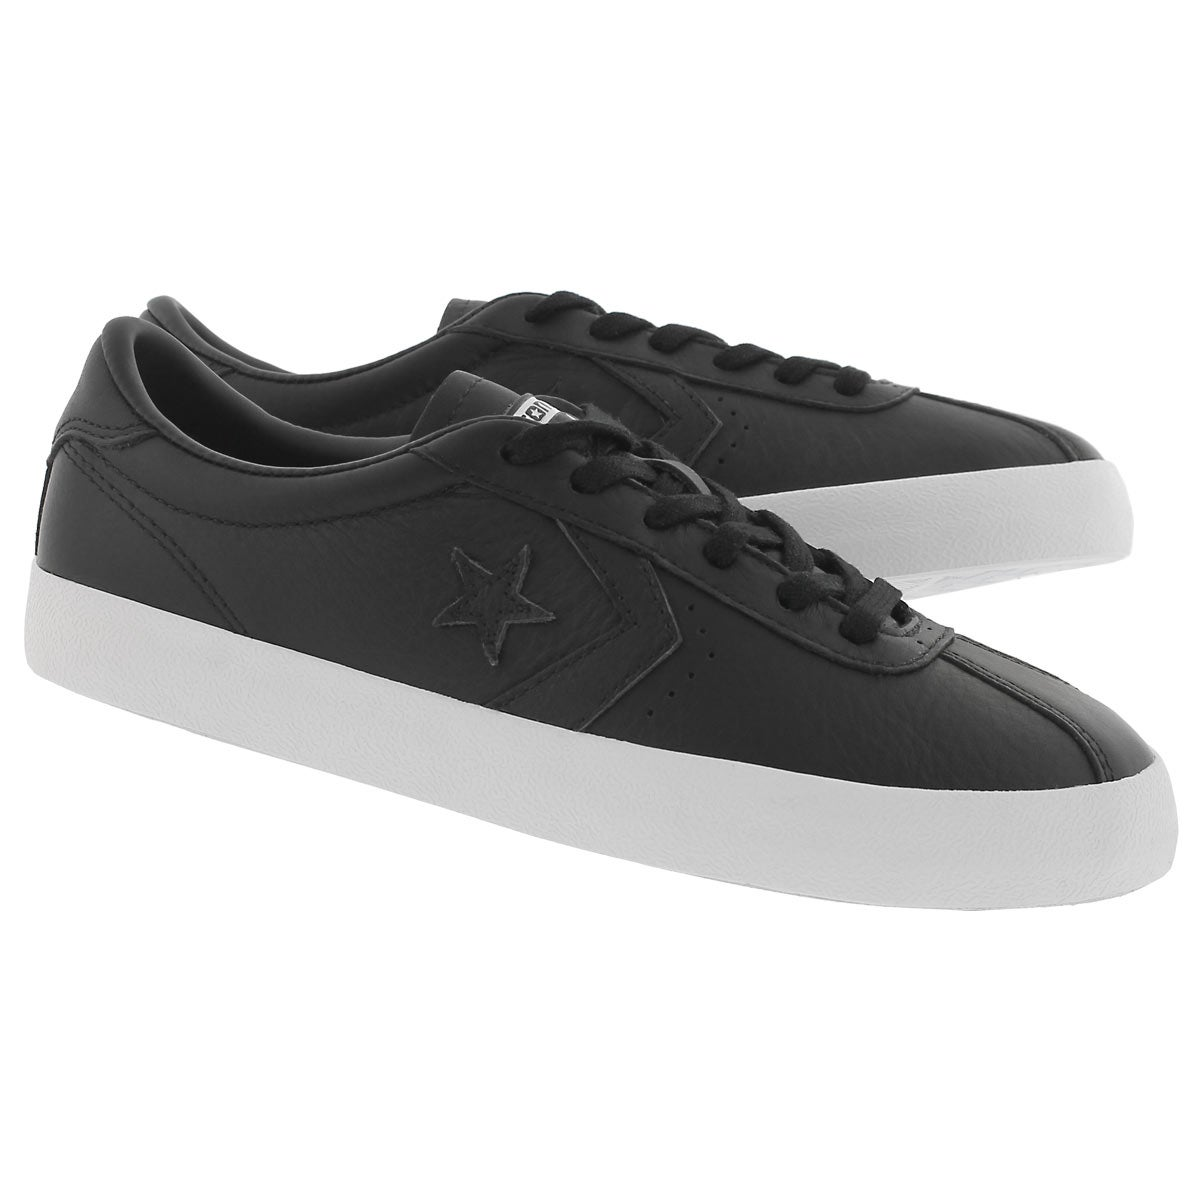 Lds Breakpoint Leather blk fashion snkr